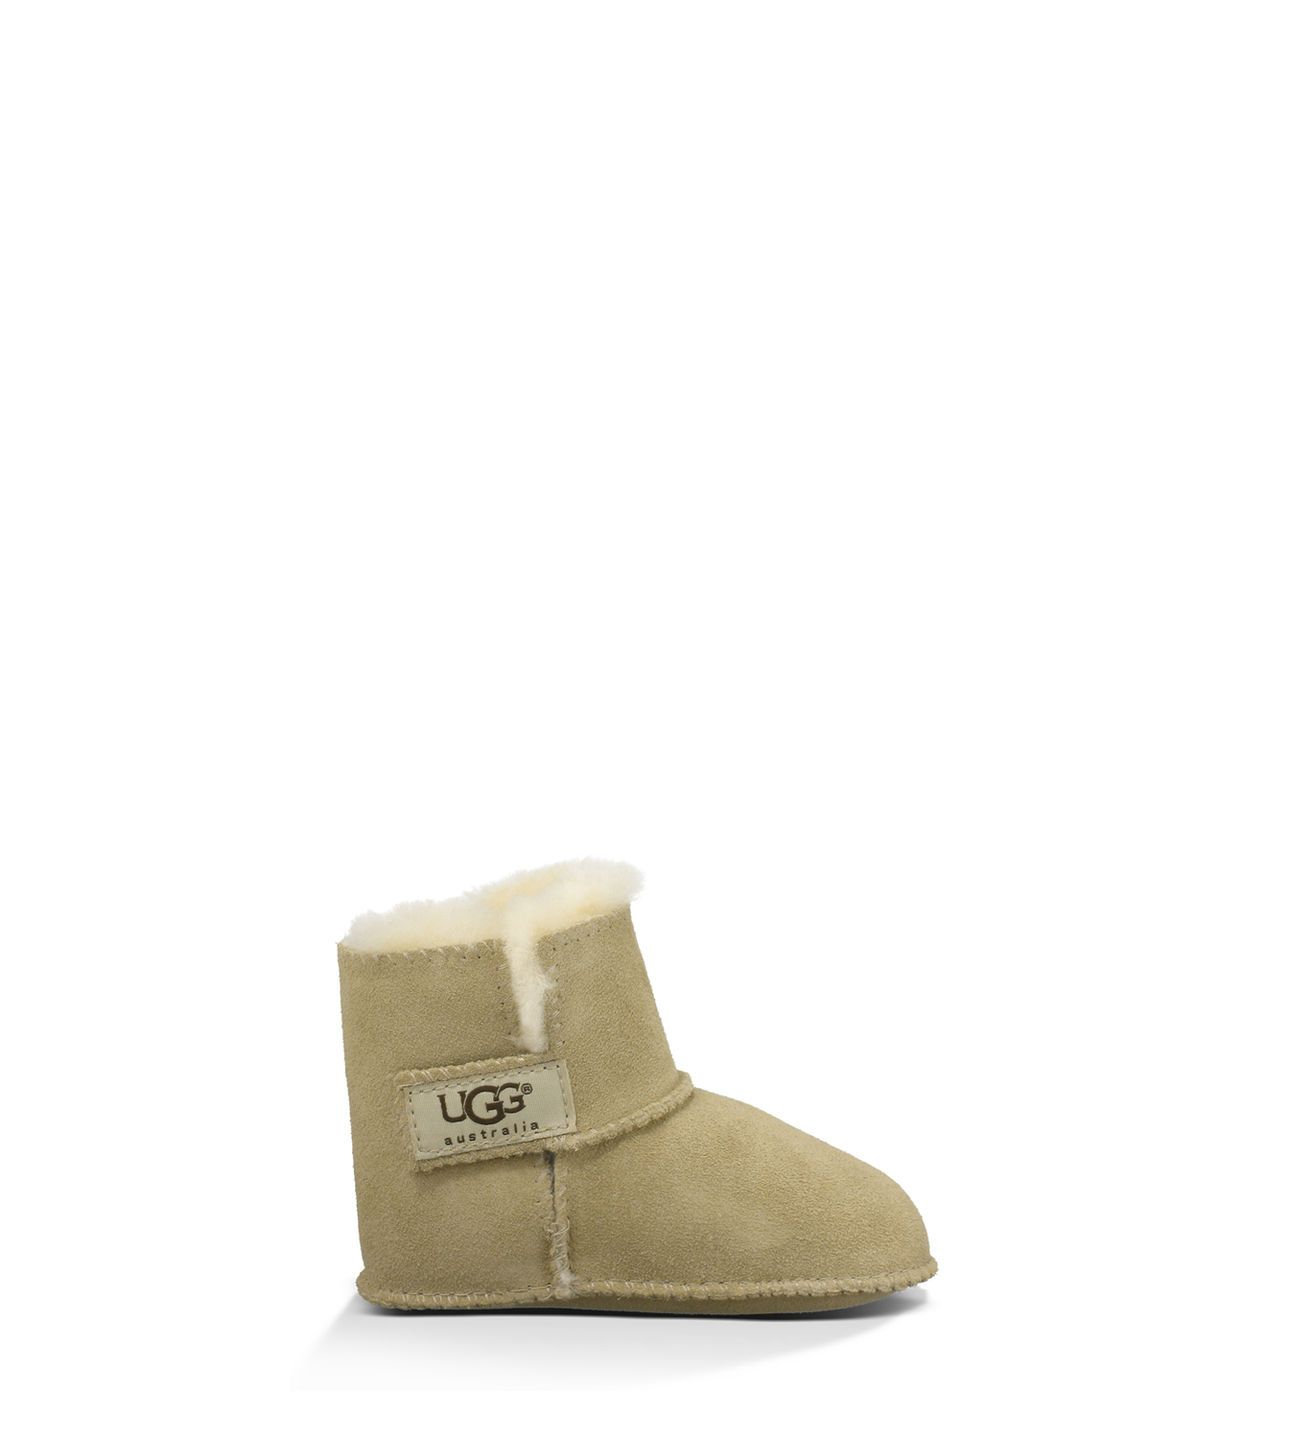 Browse the official UGG® Australia website for Infants' Erin Boots. Shop with confidence at UGGAustralia.co.uk.